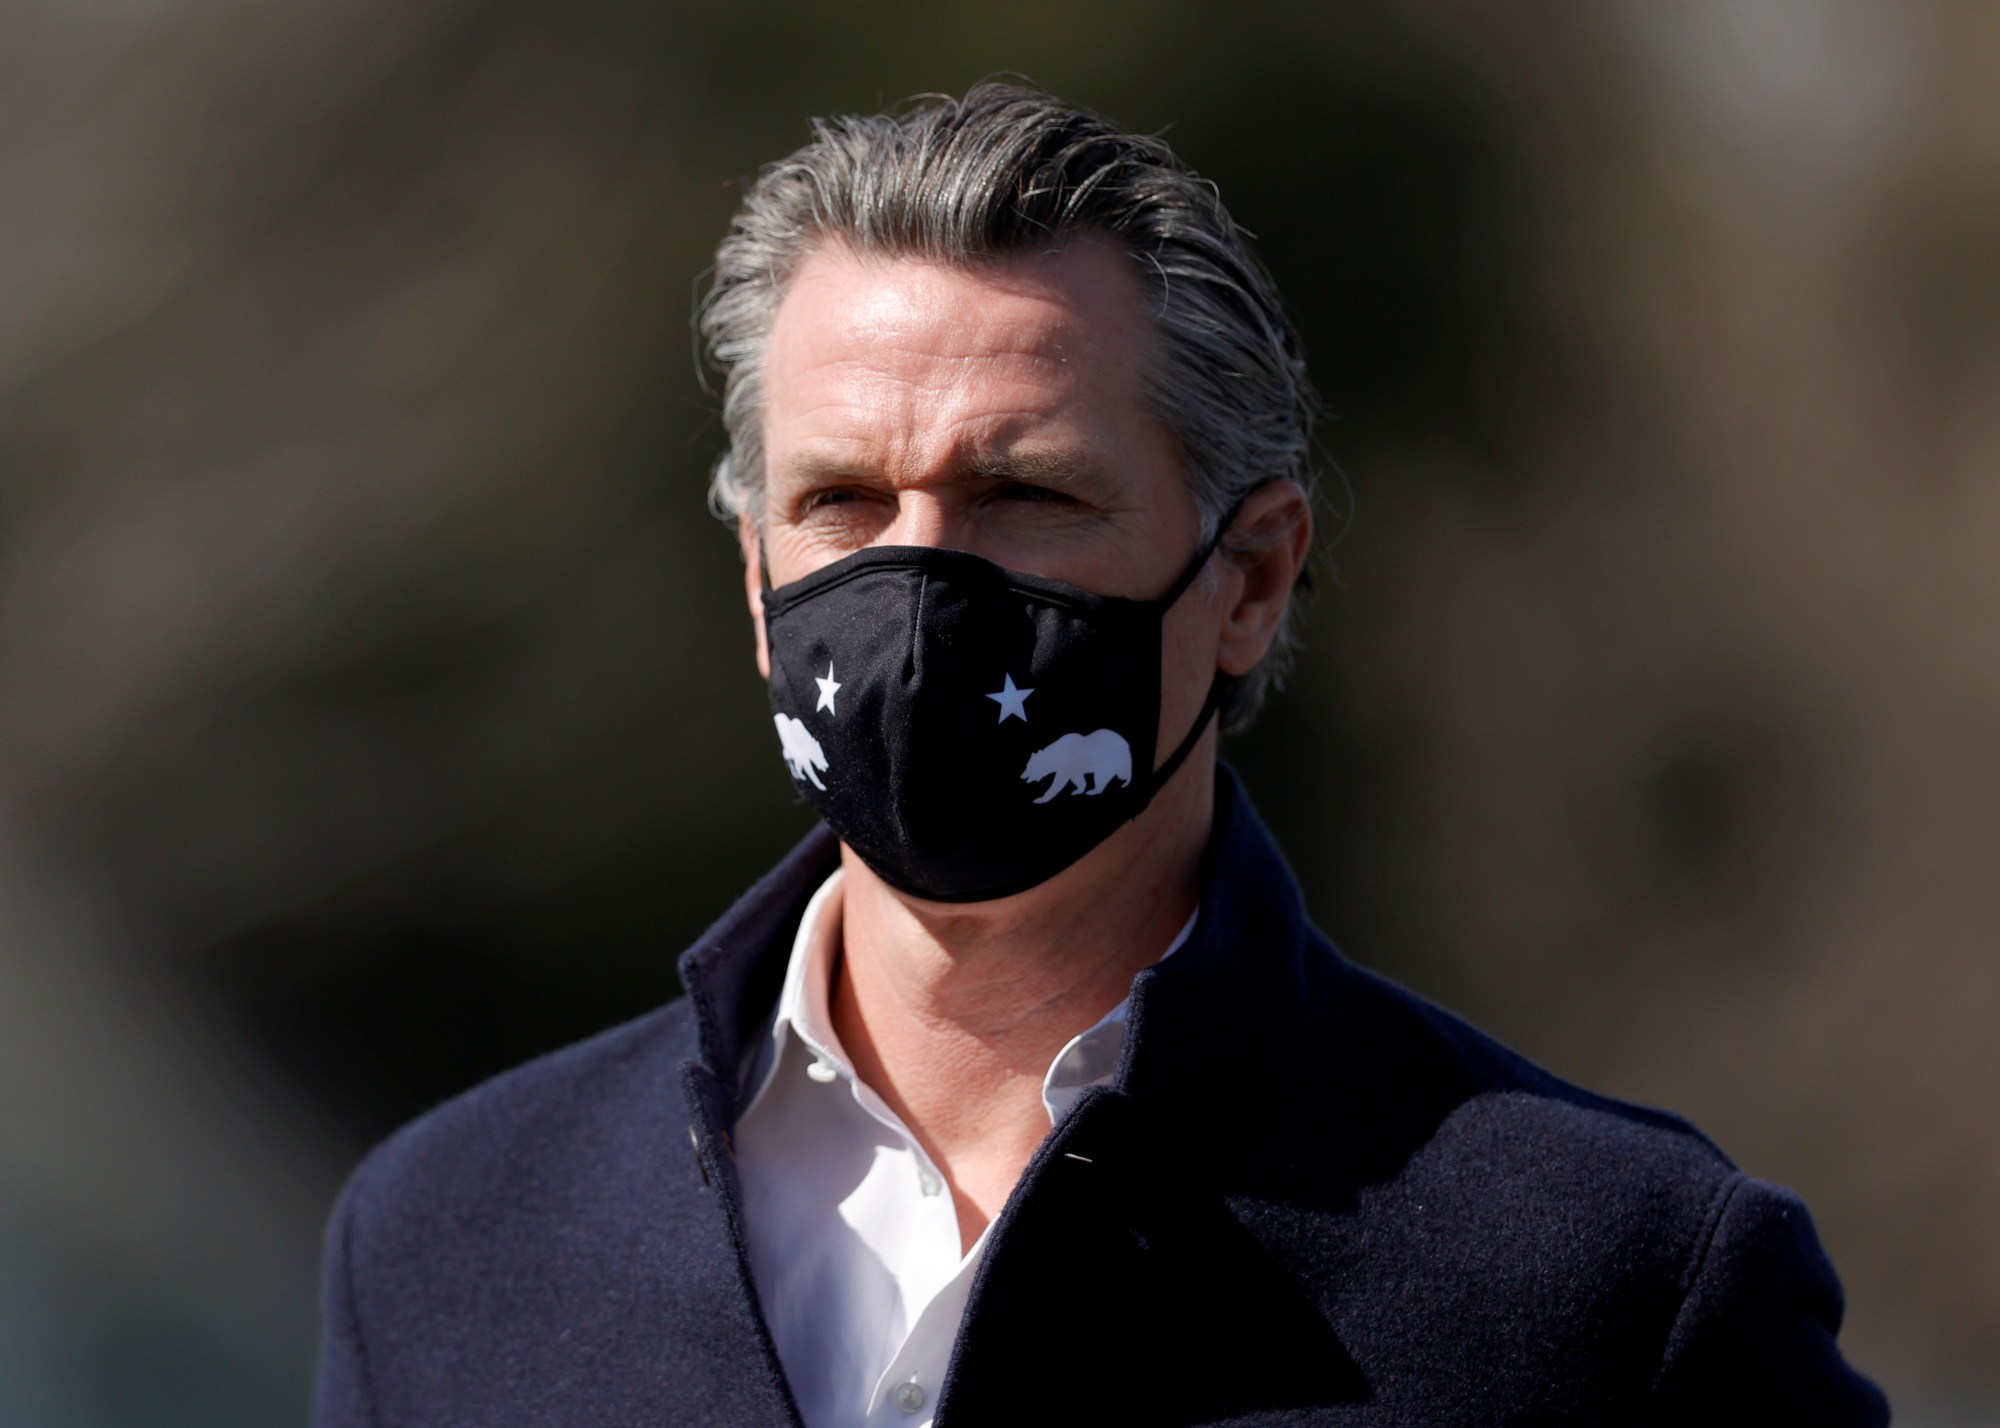 California Gov. Gavin Newsom looks on during a news conference after touring Barron Park Elementary School on March 02, 2021 in Palo Alto. (Justin Sullivan/Getty Images)